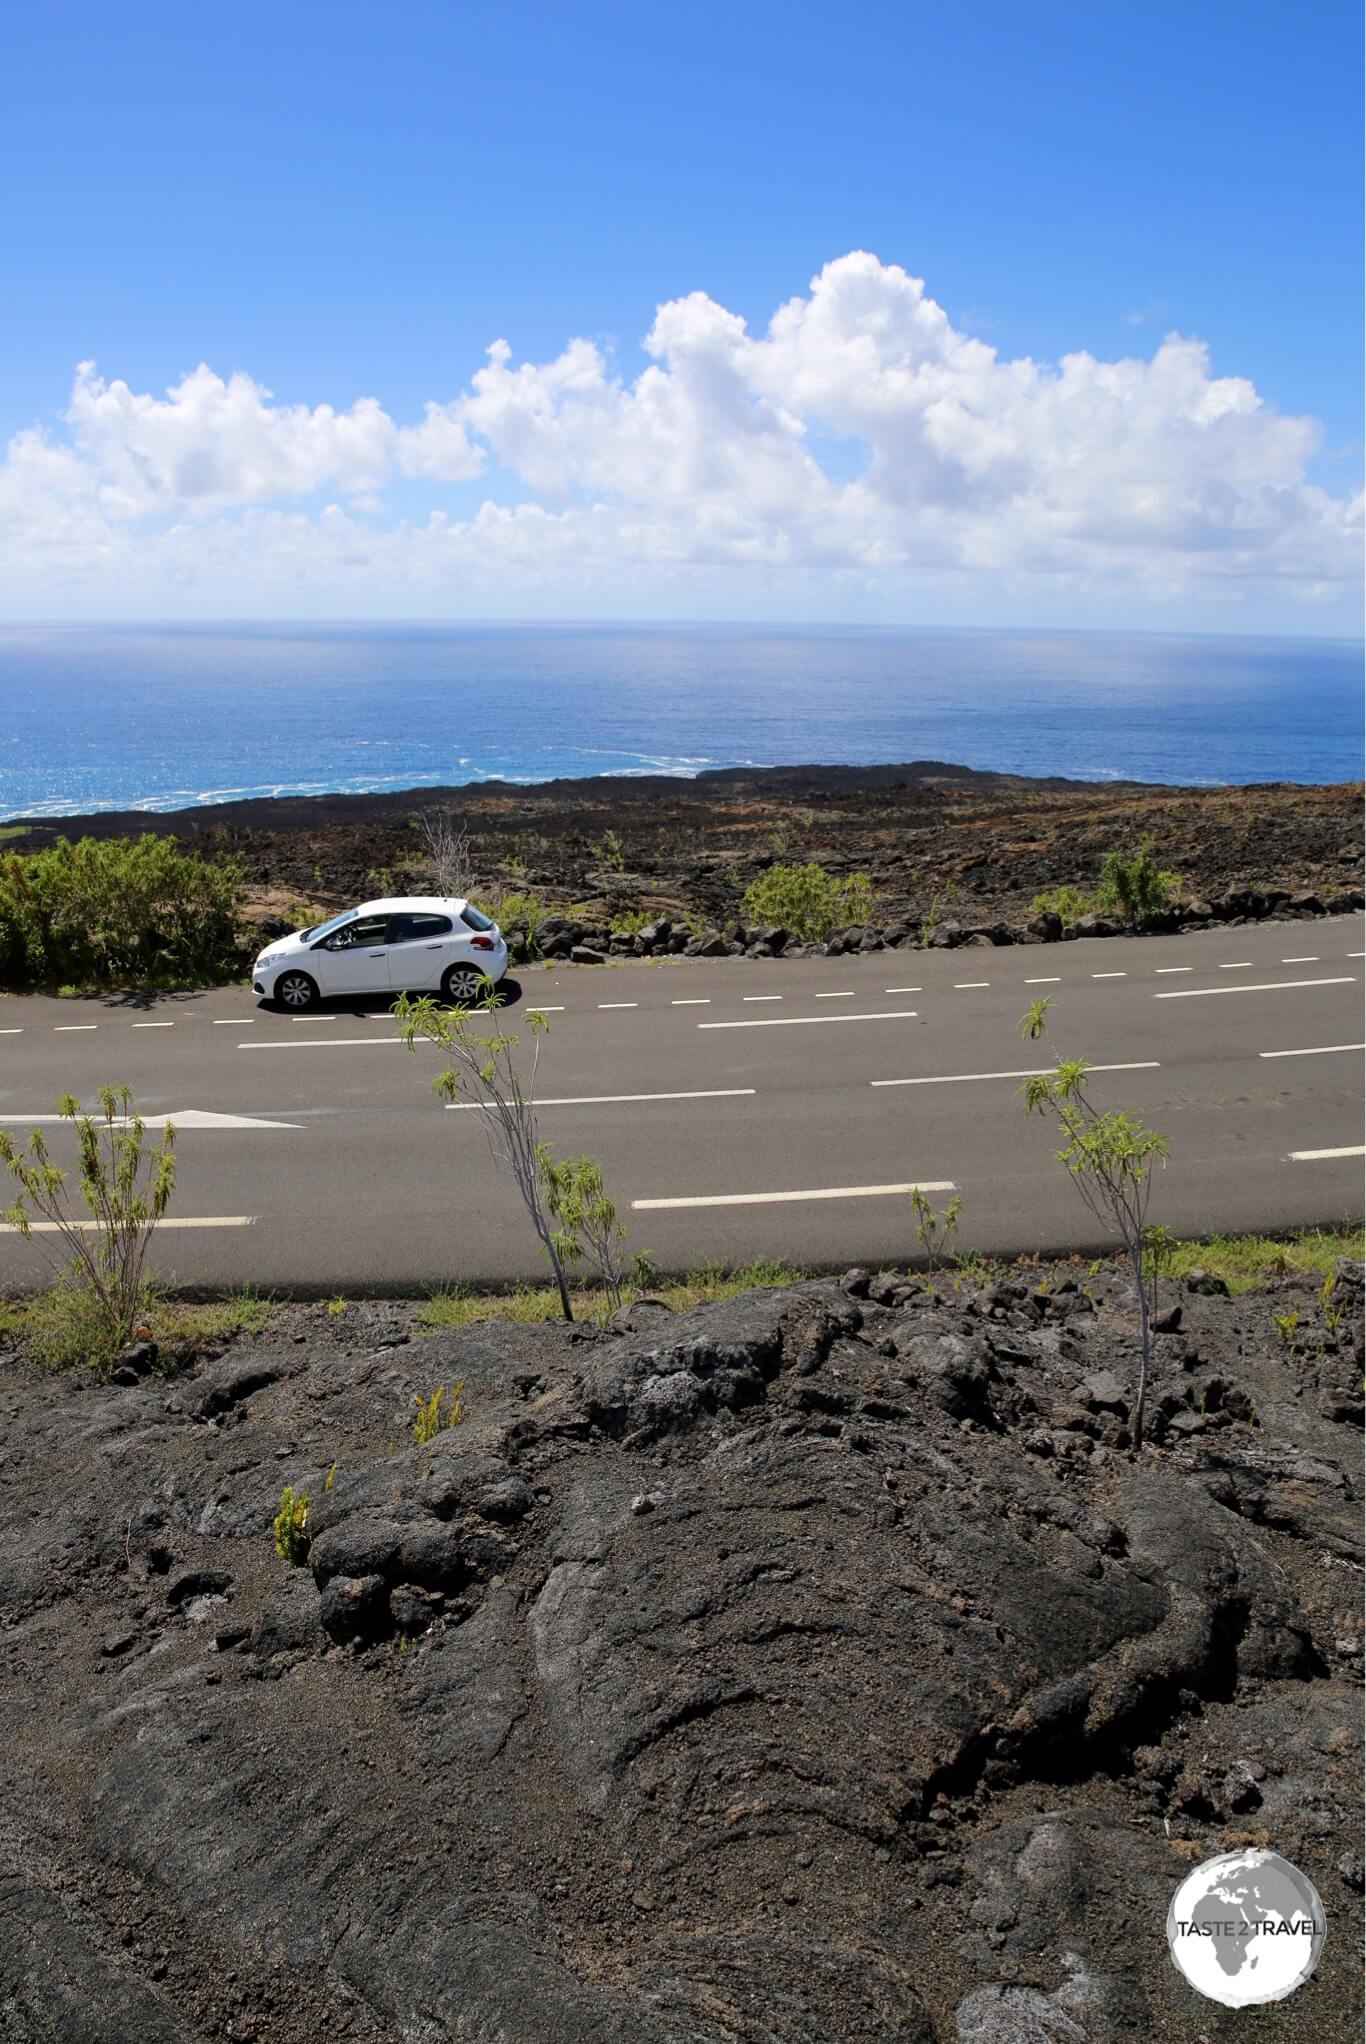 My rental car in the middle of a lava field on the south coast.